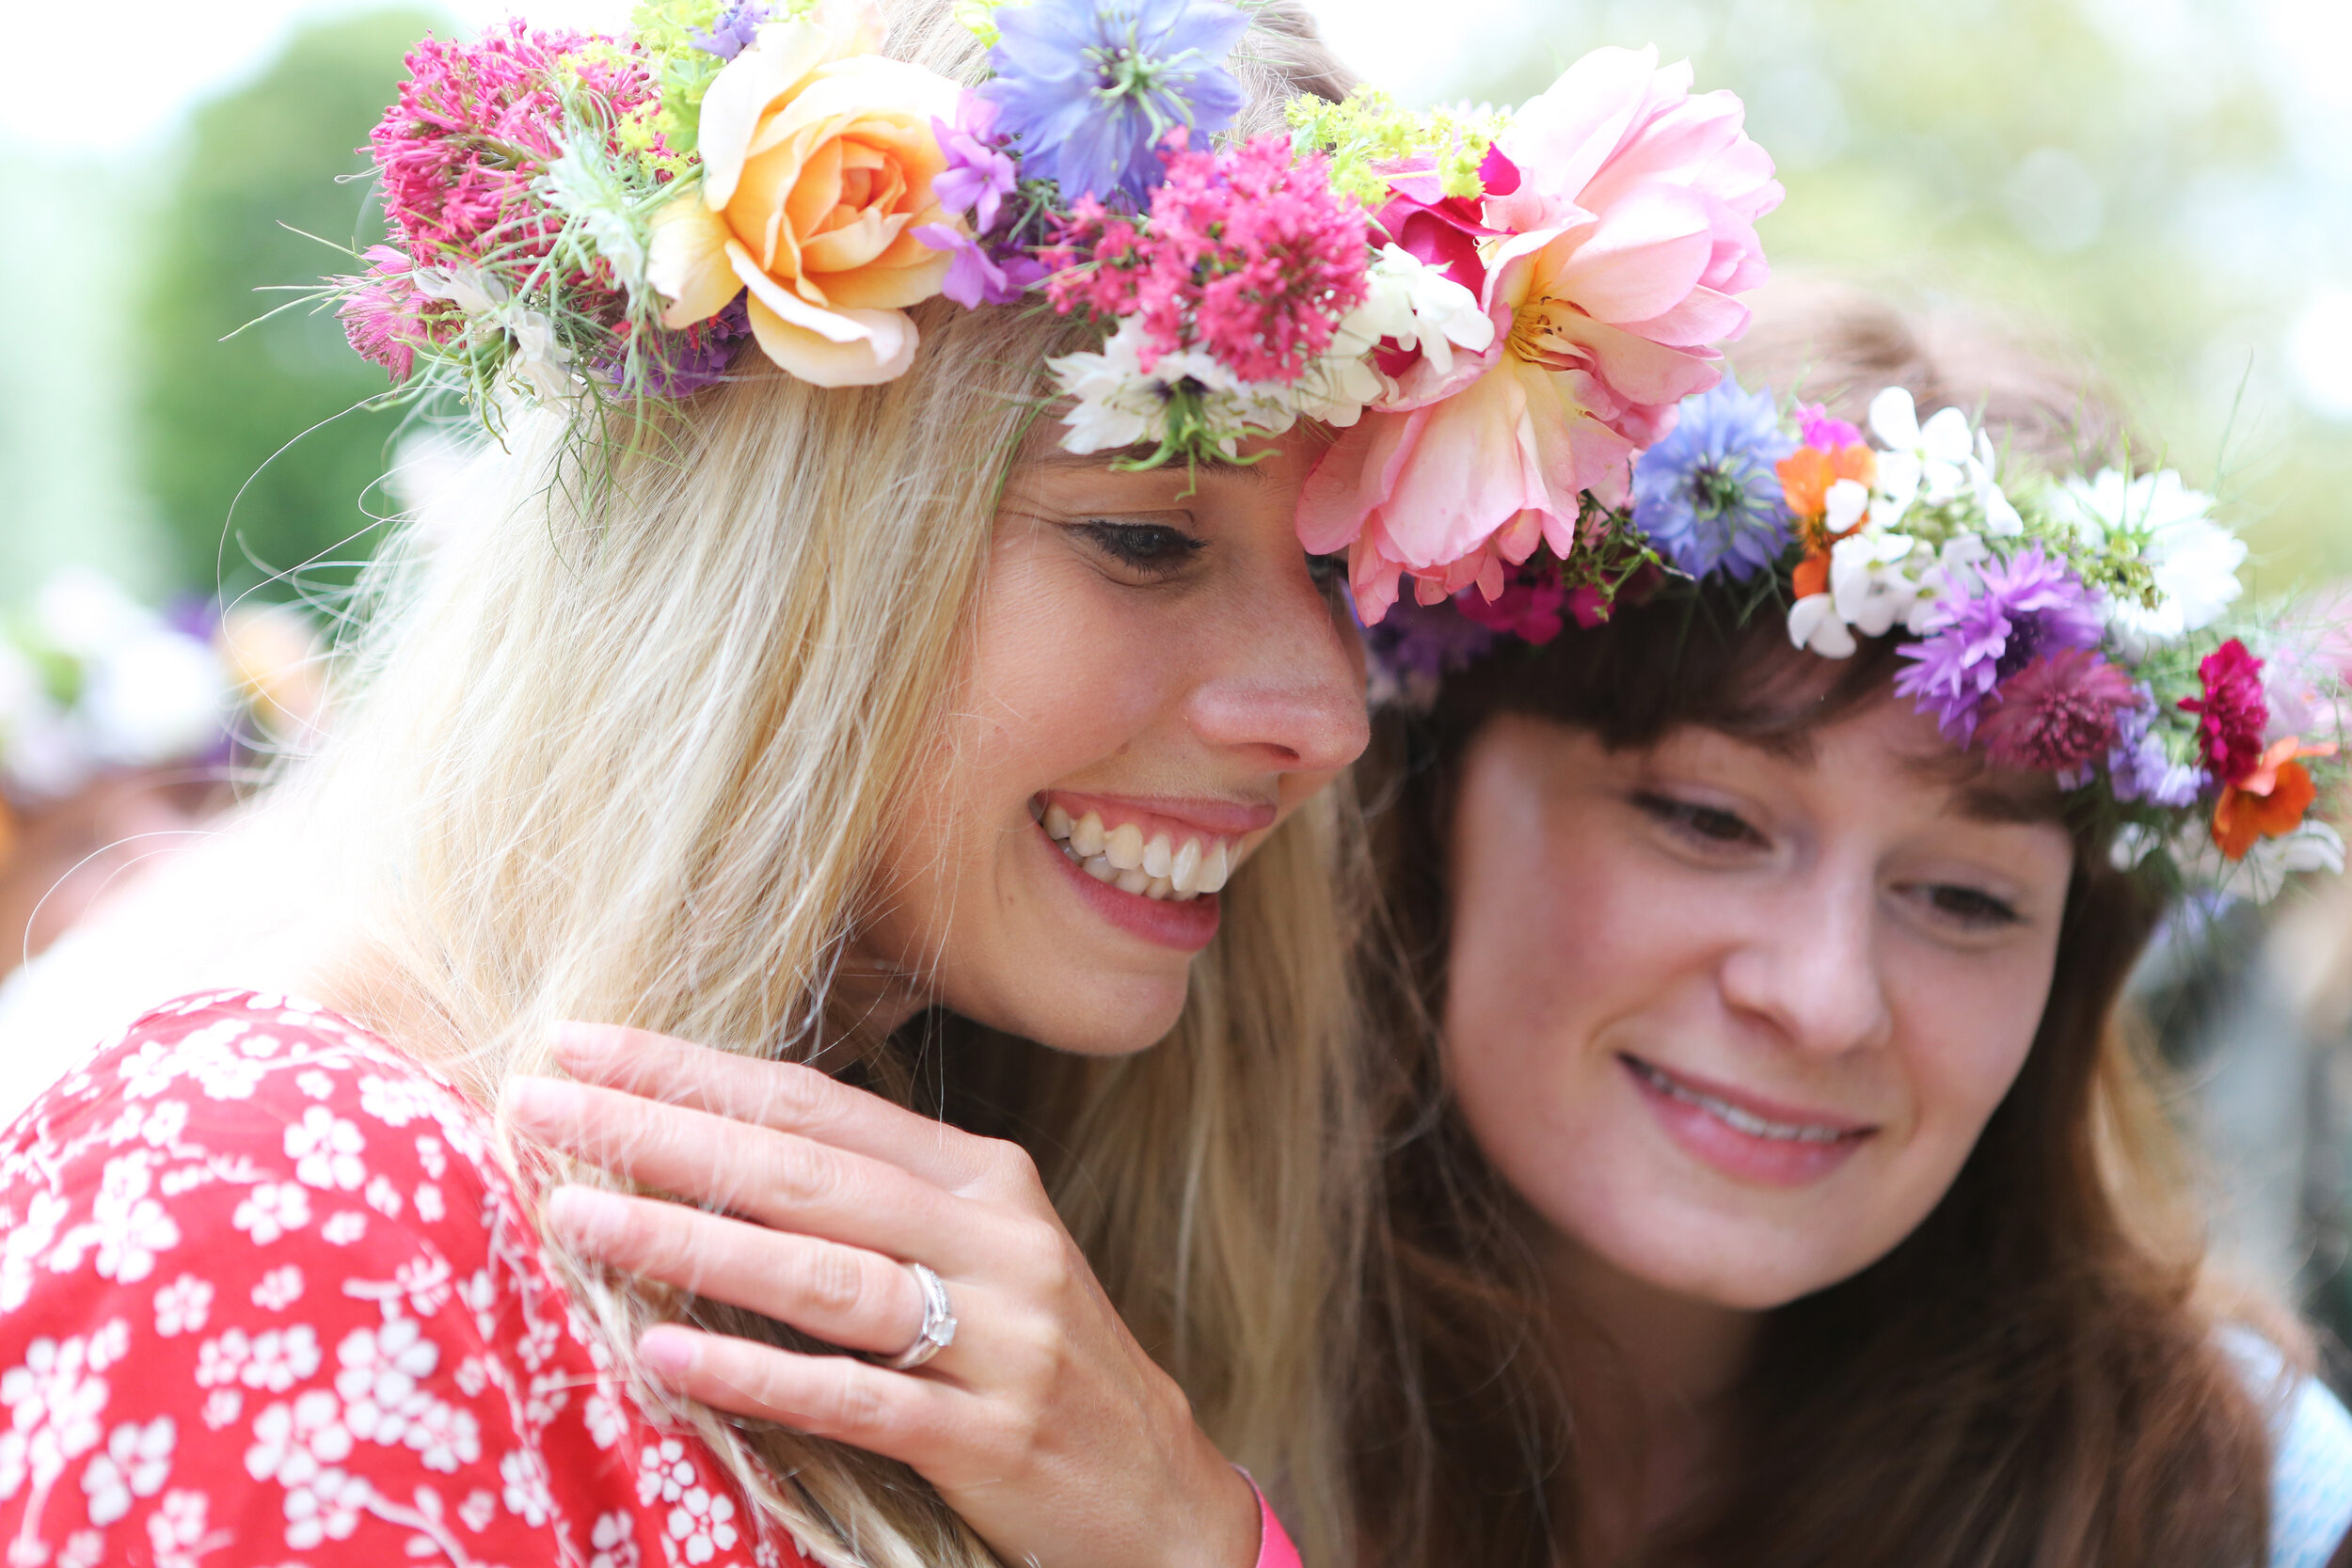 Cambridhe-flower-crown-parties.jpg